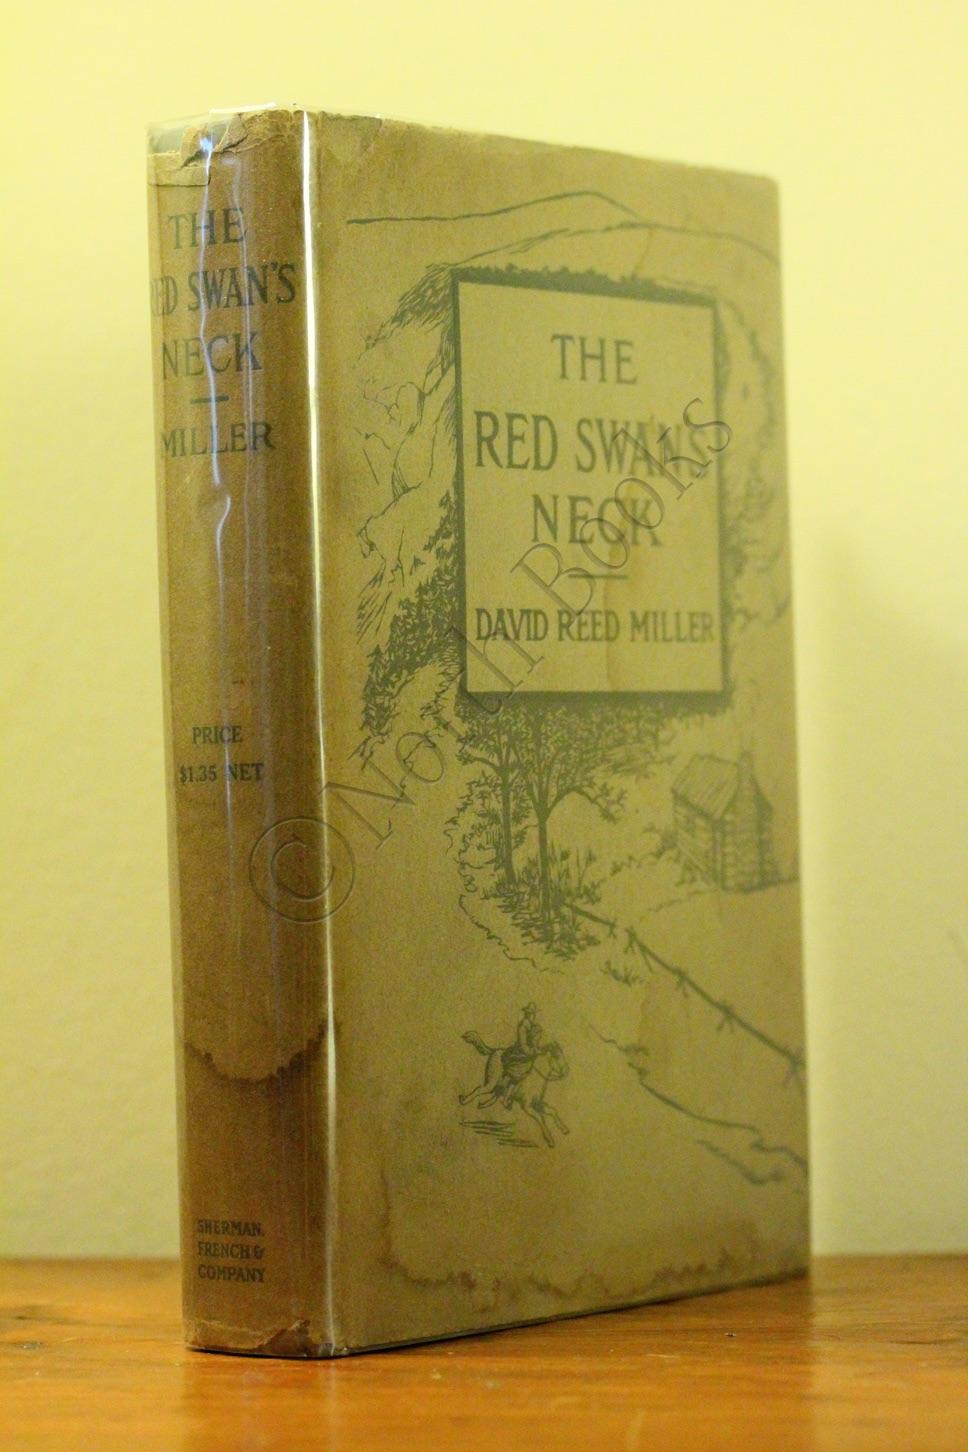 The Red Swan: Myths and Tales of the American Indians